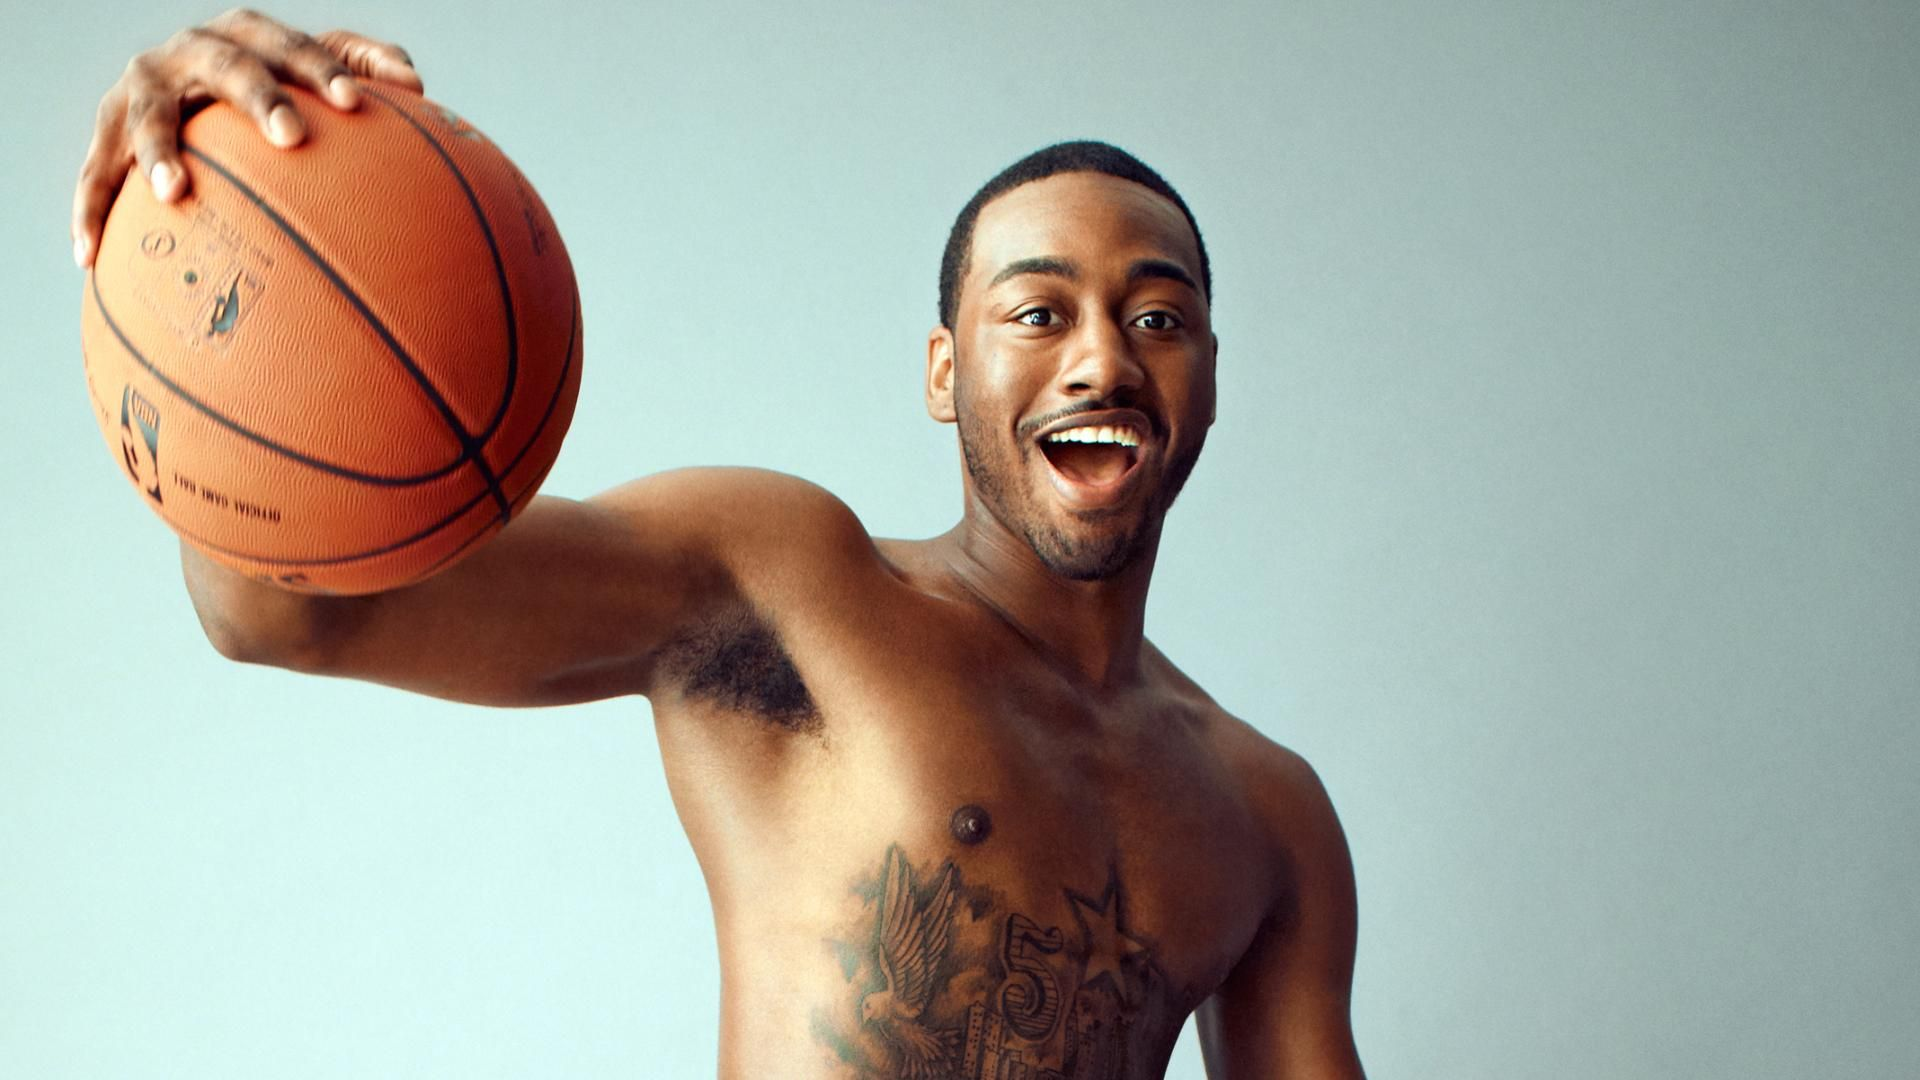 ESPN The Mag Body Issue 2013: John Wall